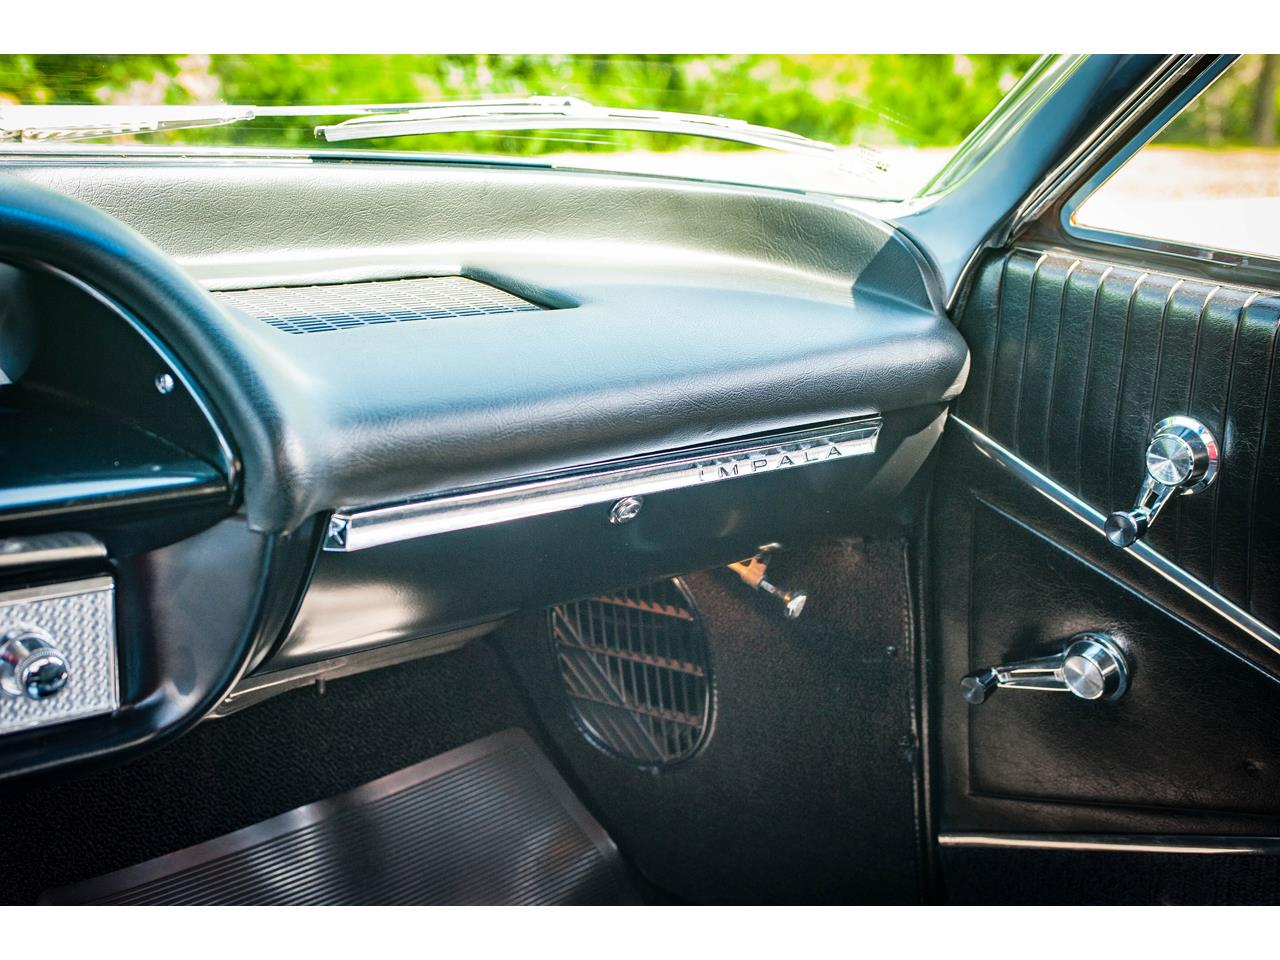 Large Picture of Classic '64 Chevrolet Impala - $45,000.00 Offered by Gateway Classic Cars - St. Louis - QRDR